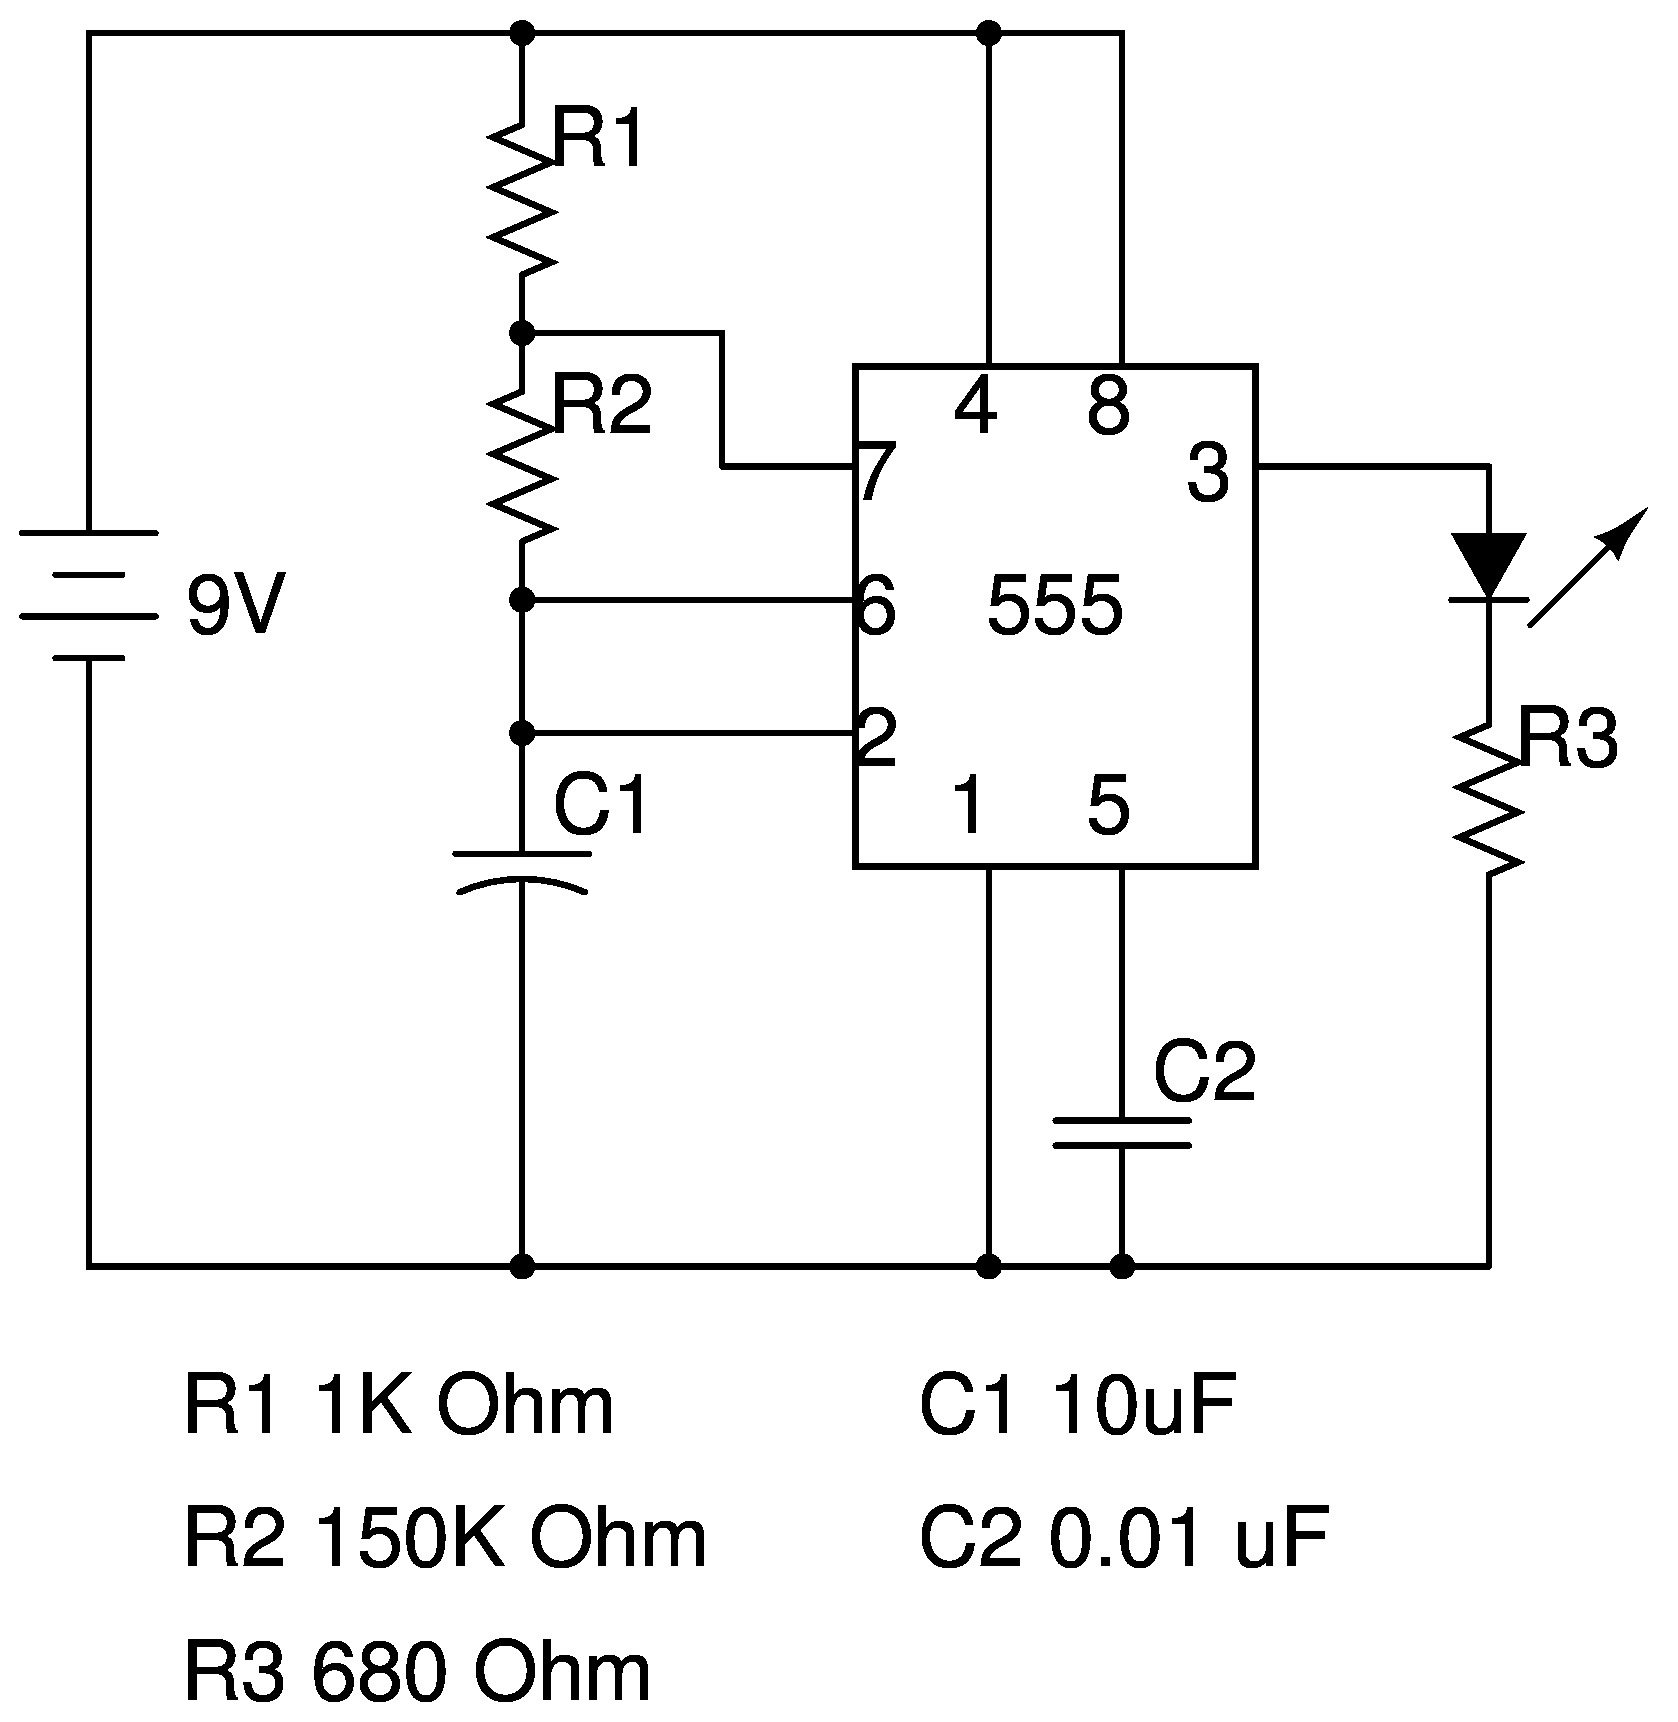 Basic Electronics Circuit Diagram